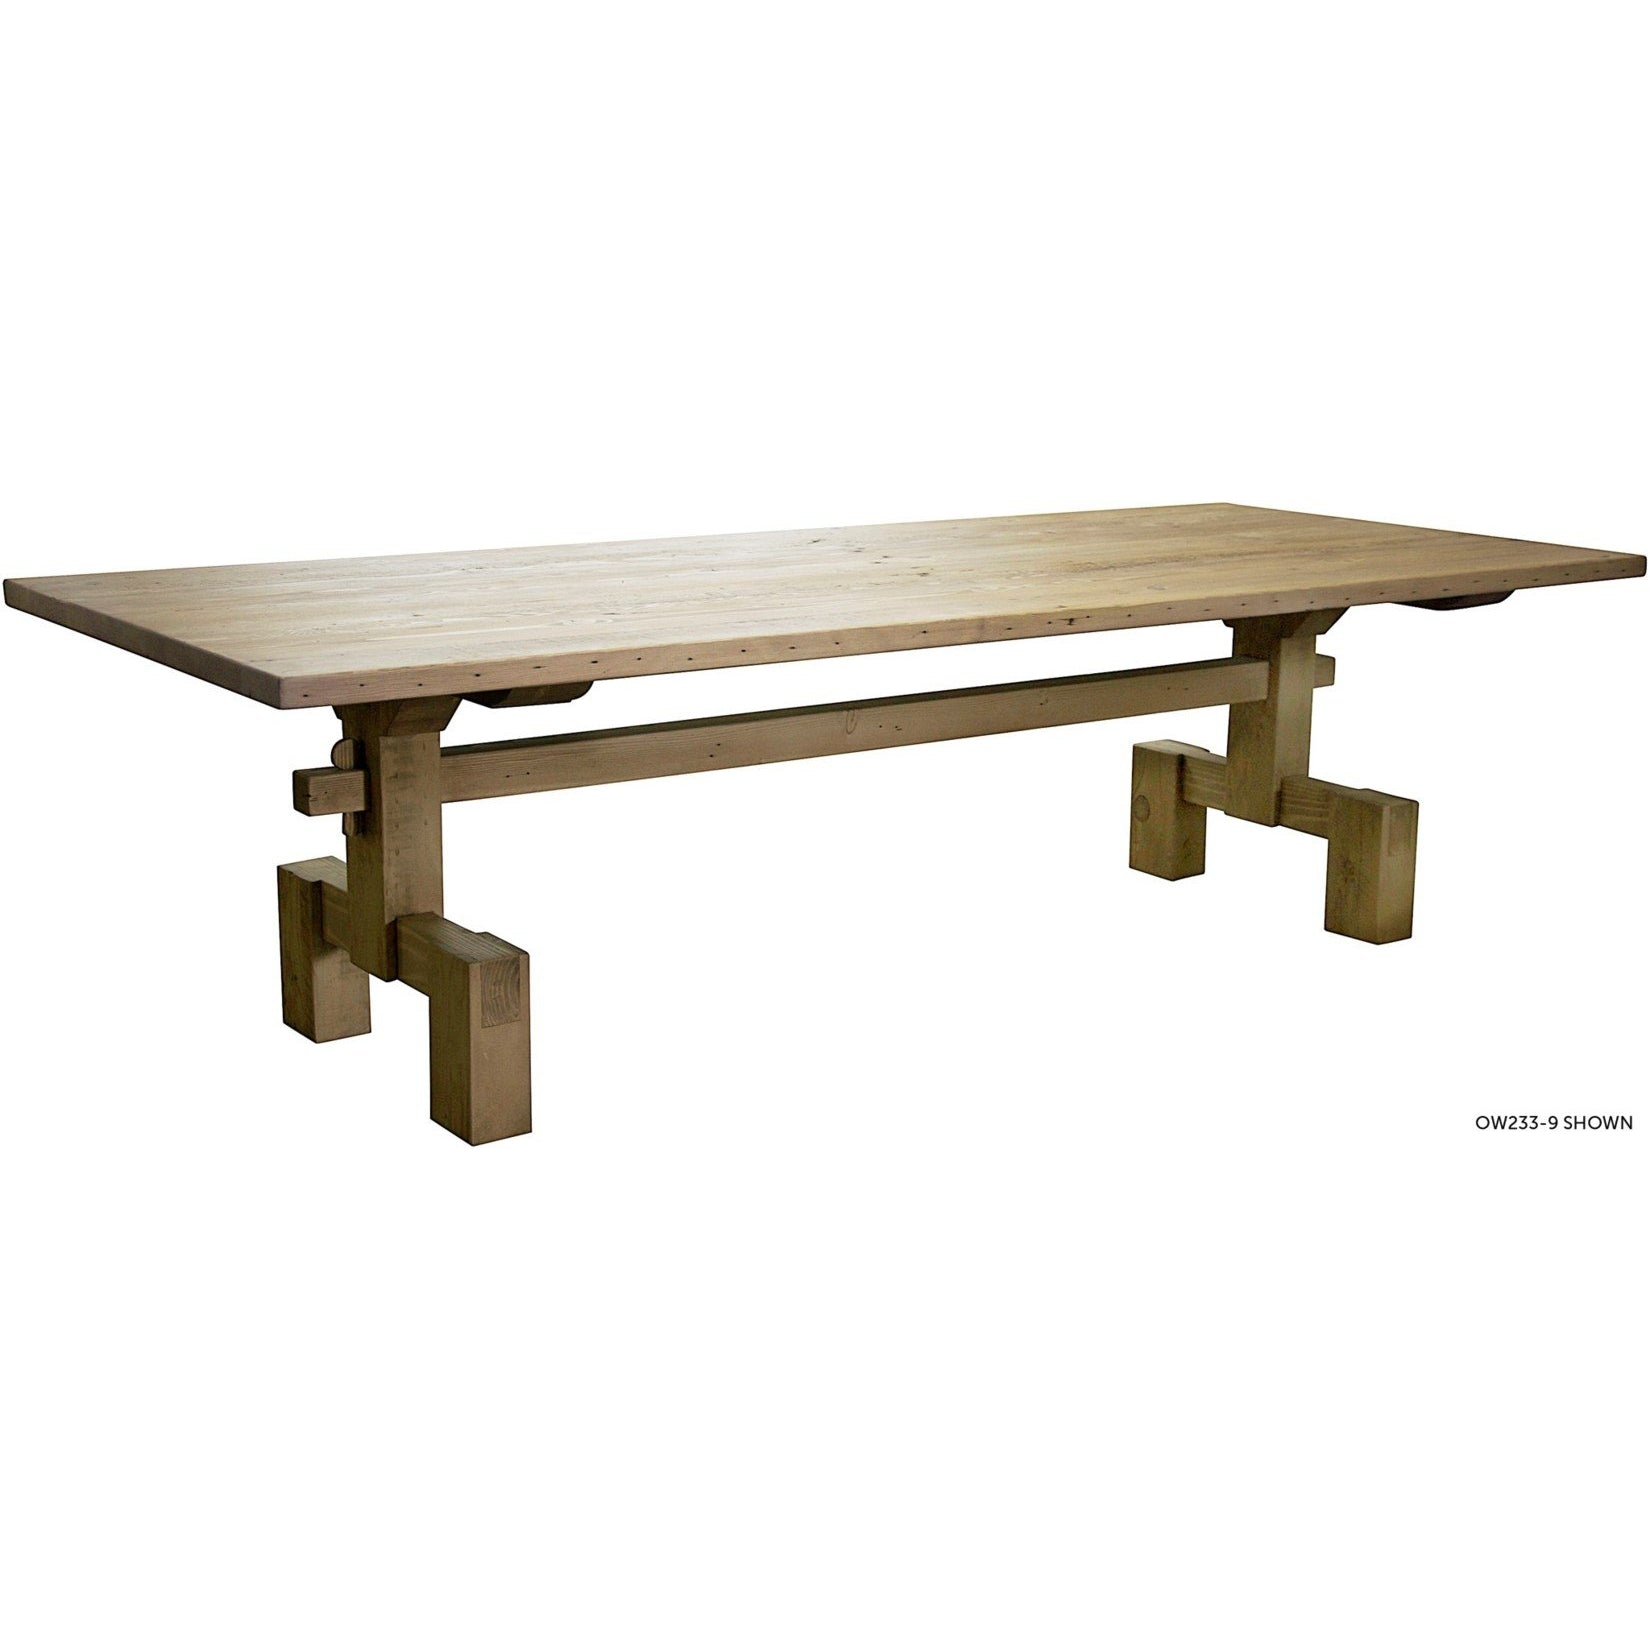 "CFC Furniture Reclaimed Lumber Emilia Dining Table, 120""-CFC Furniture-Blue Hand Home"